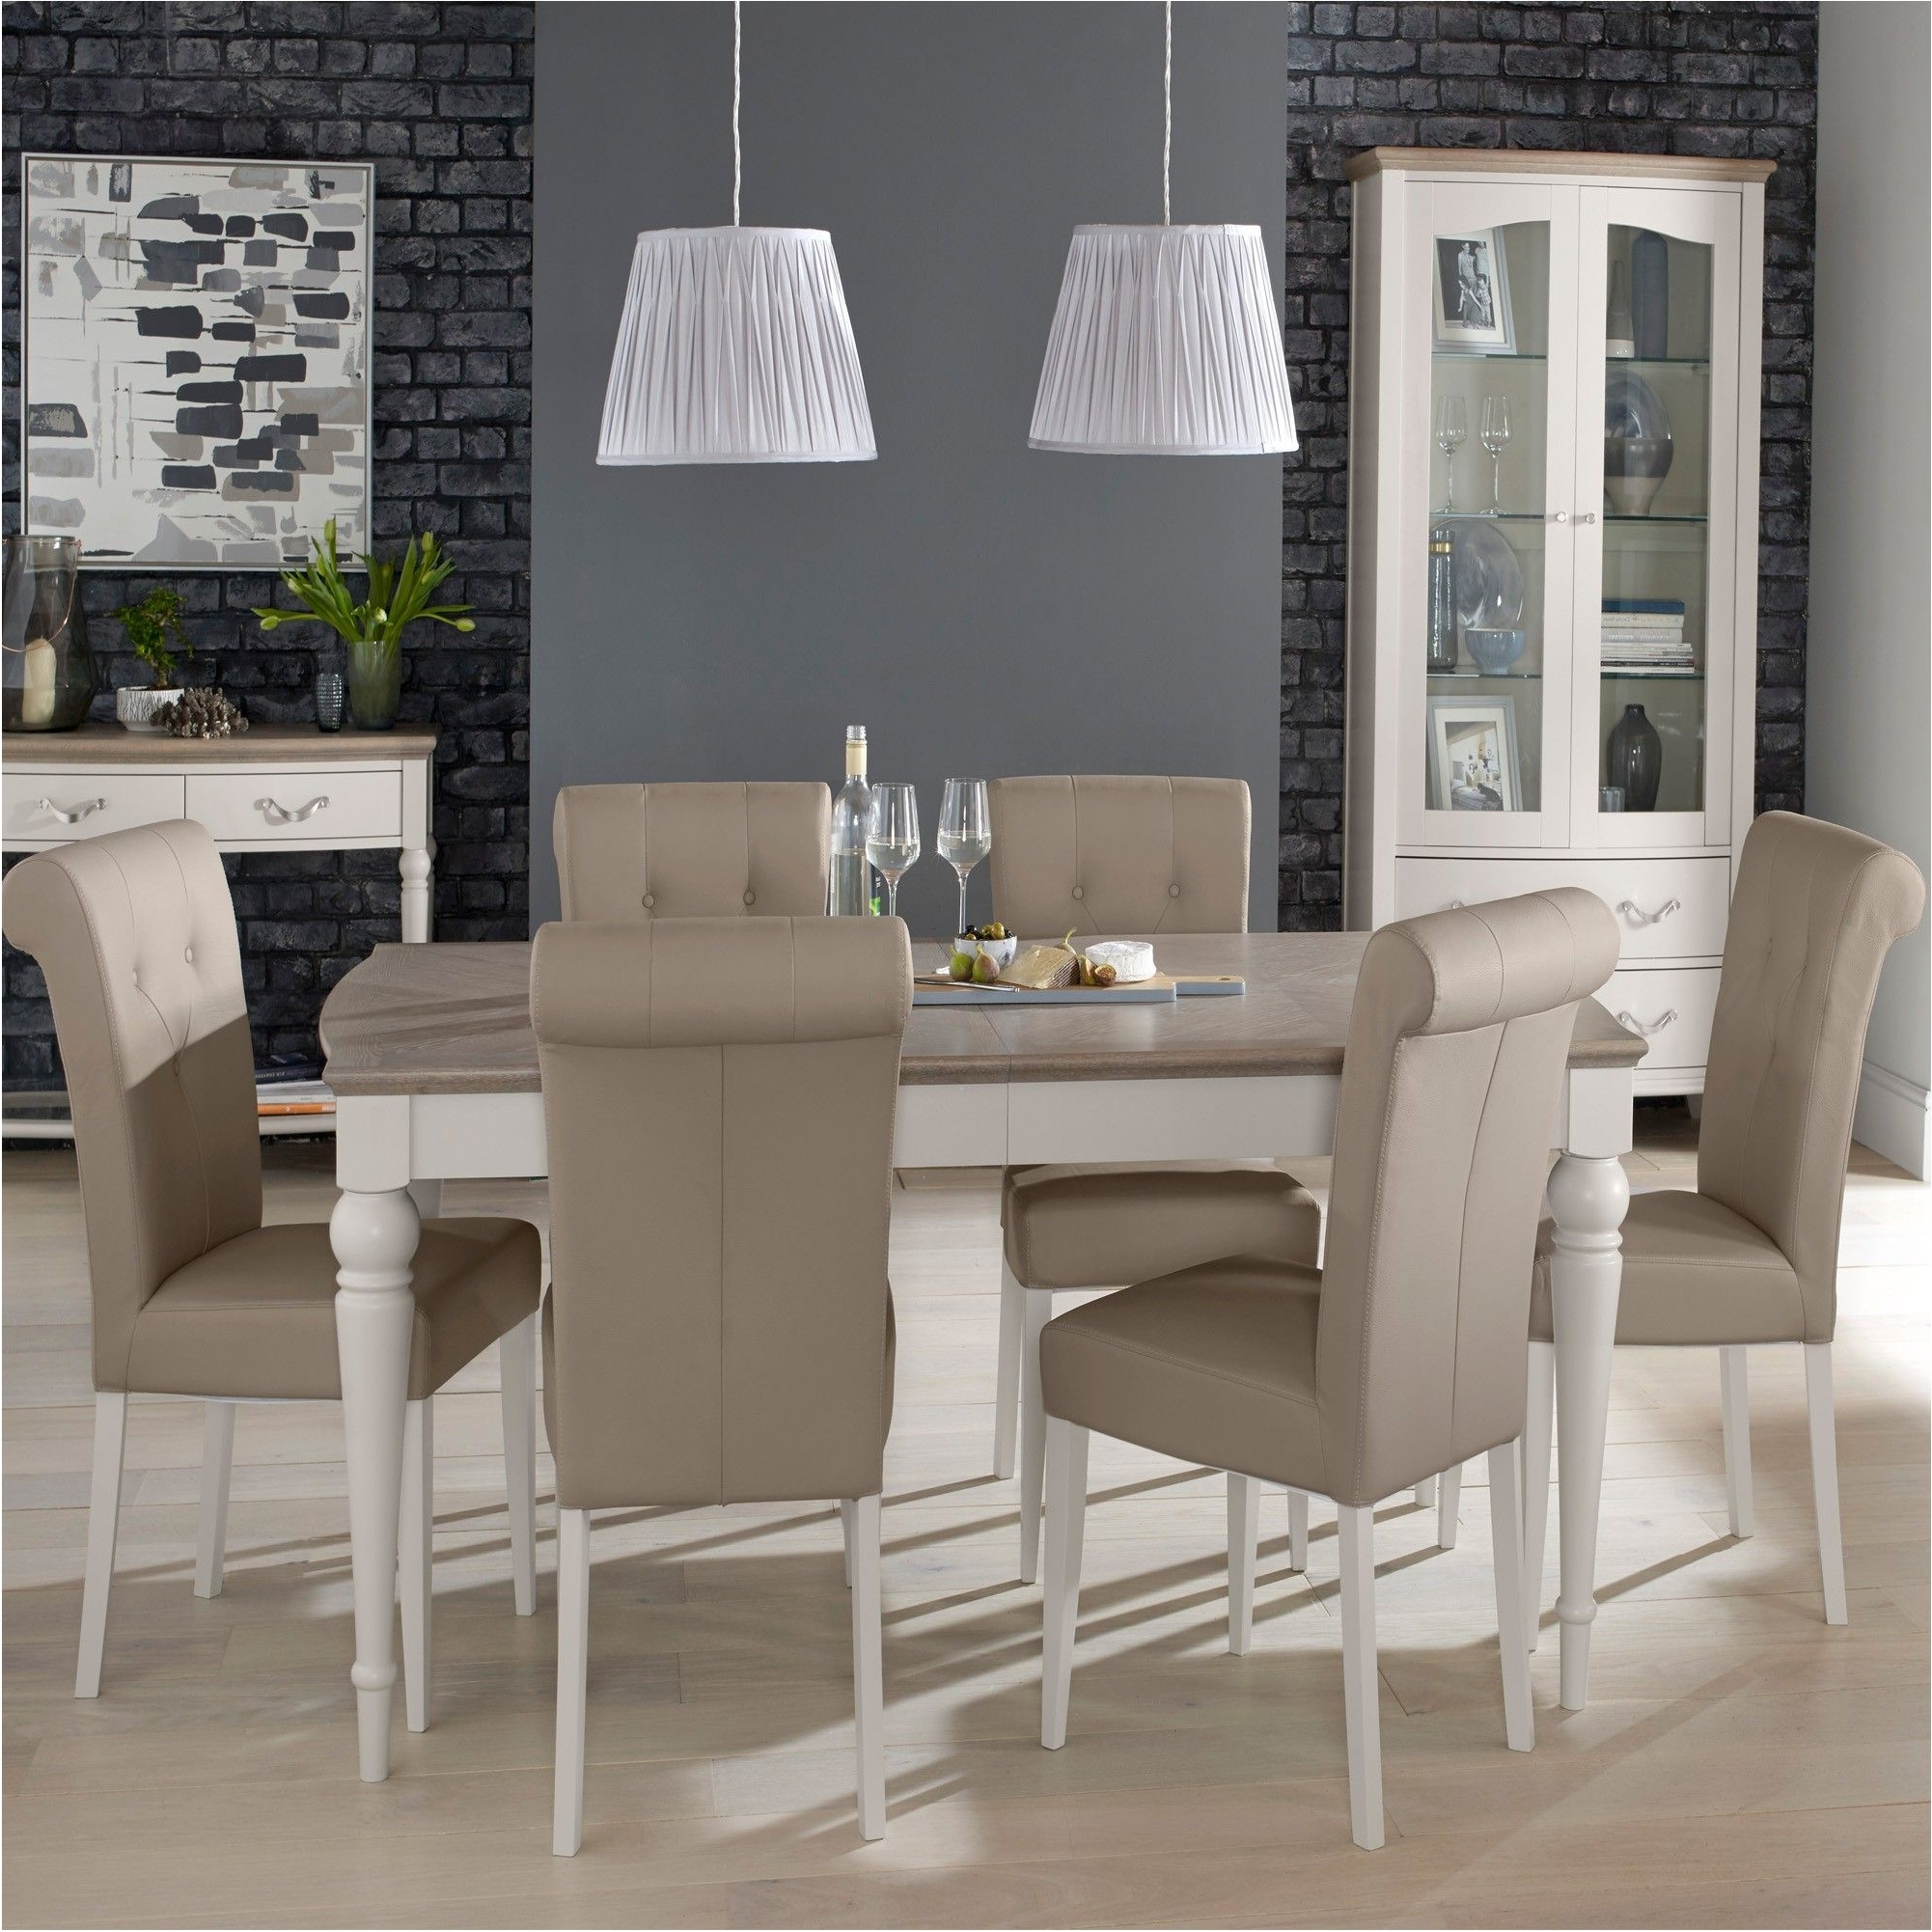 6 Chair Dining Table Sets With Regard To Latest Magnificent Collection Geneva Dining Table And 6 Chairs Dining Sets (View 7 of 25)